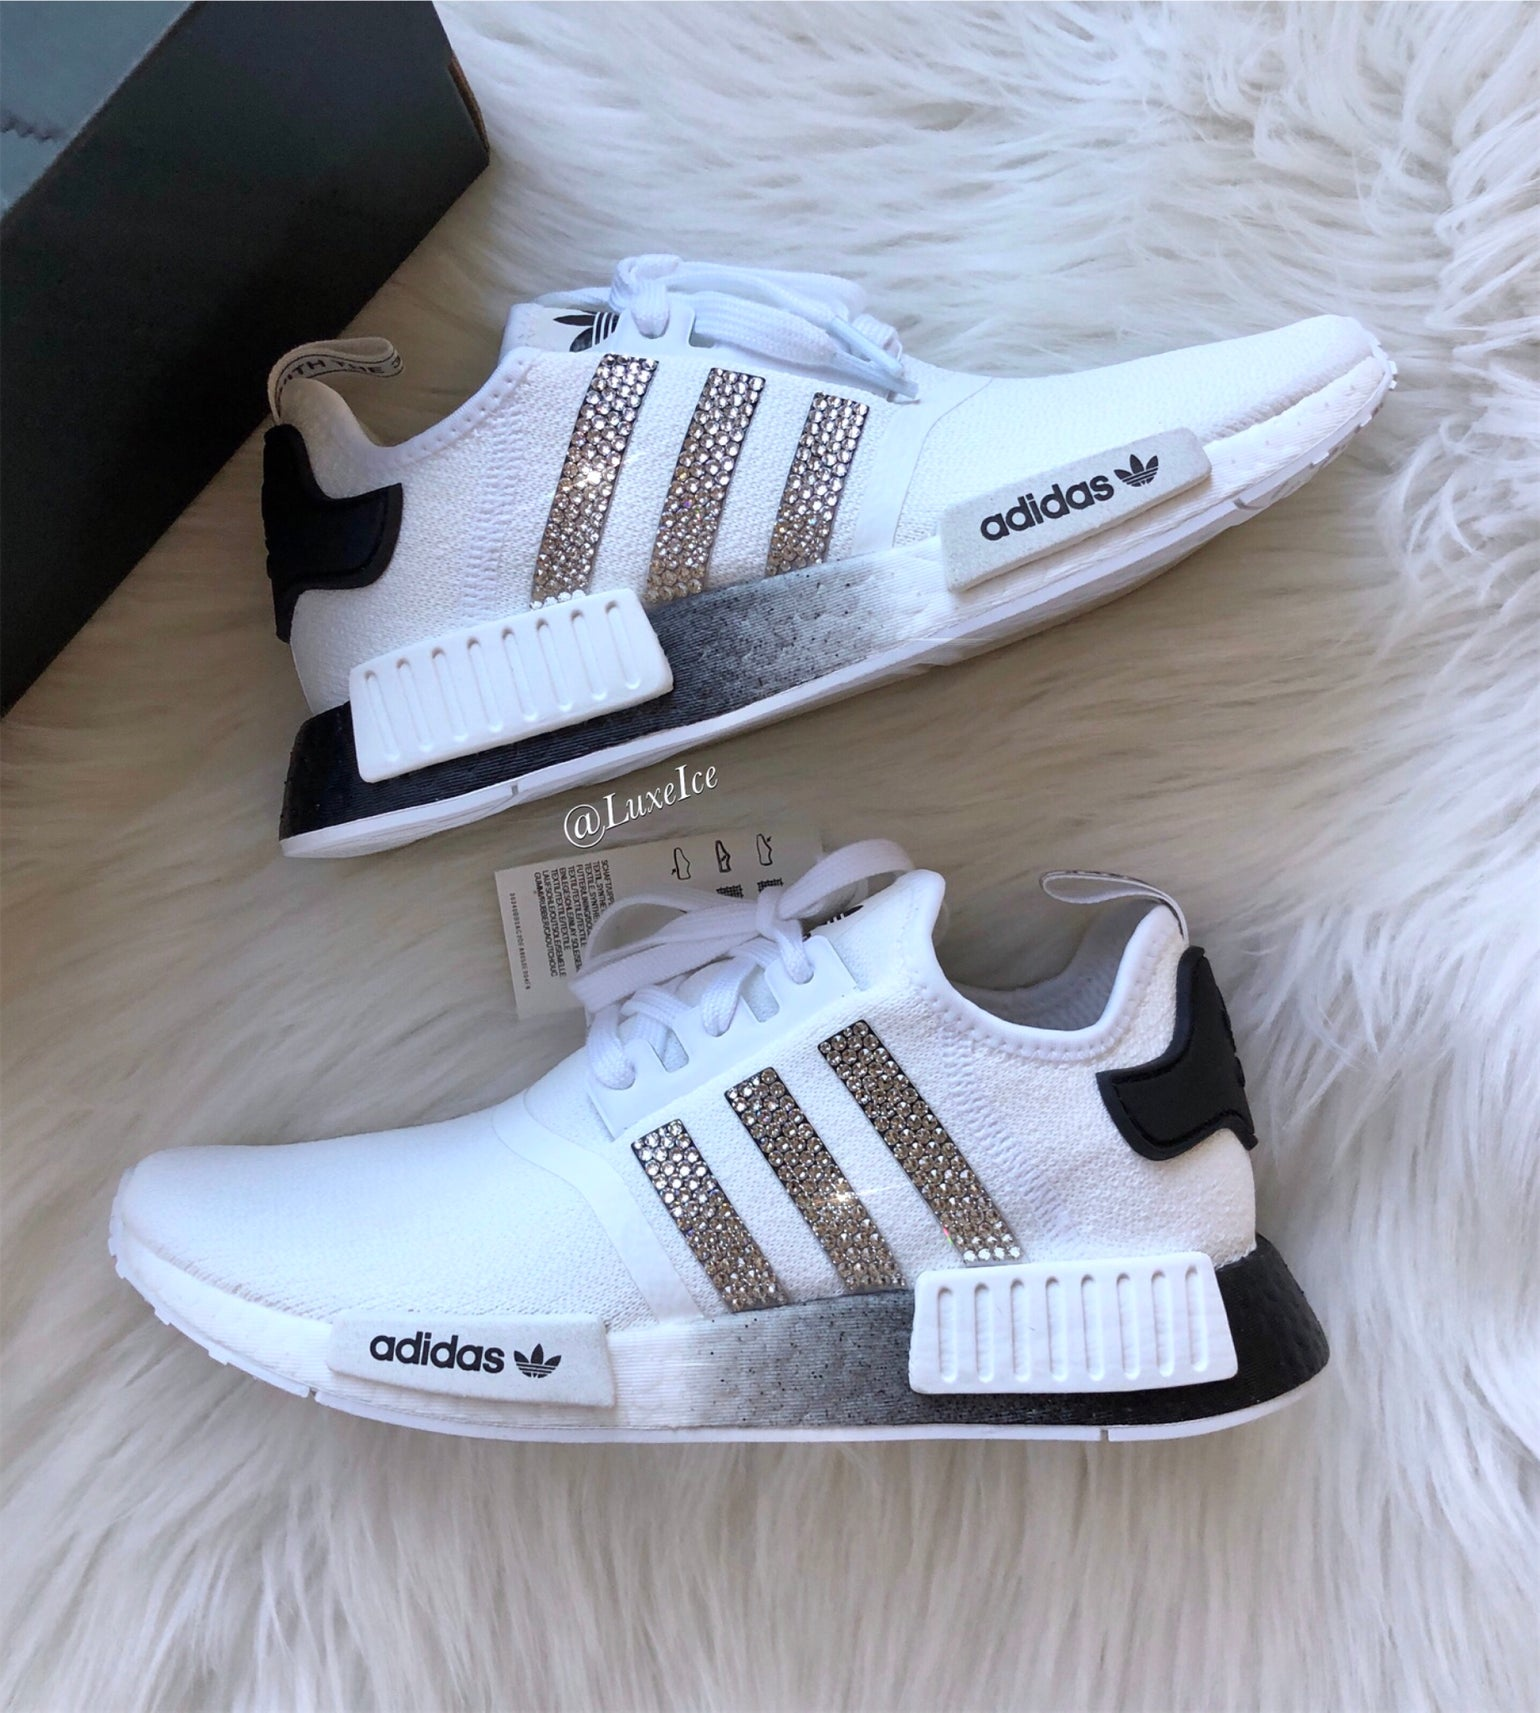 Adidas Nmd R1 White Black Customized With Swarovski Crystals